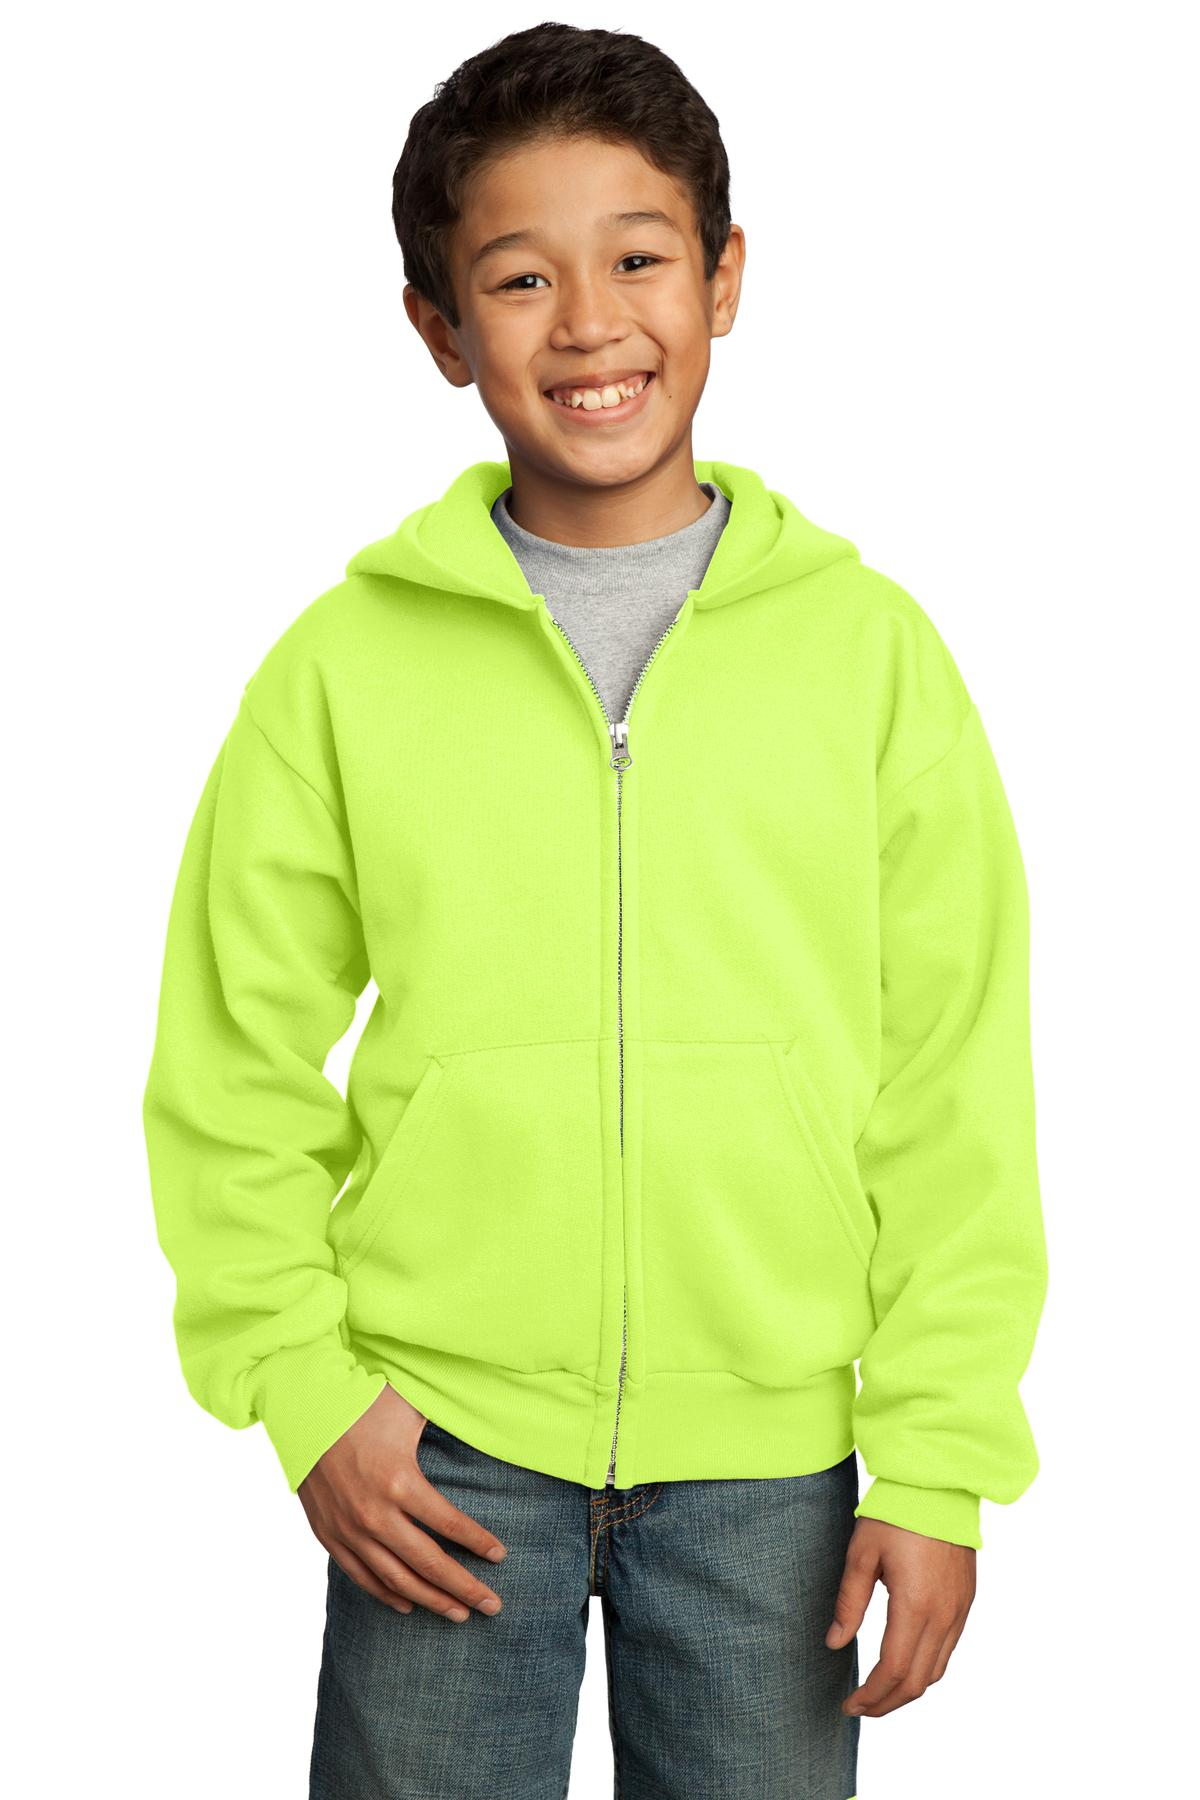 Port & Company ®  - Youth Core Fleece Full-Zip Hooded Sweatshirt.  PC90YZH - Neon Yellow